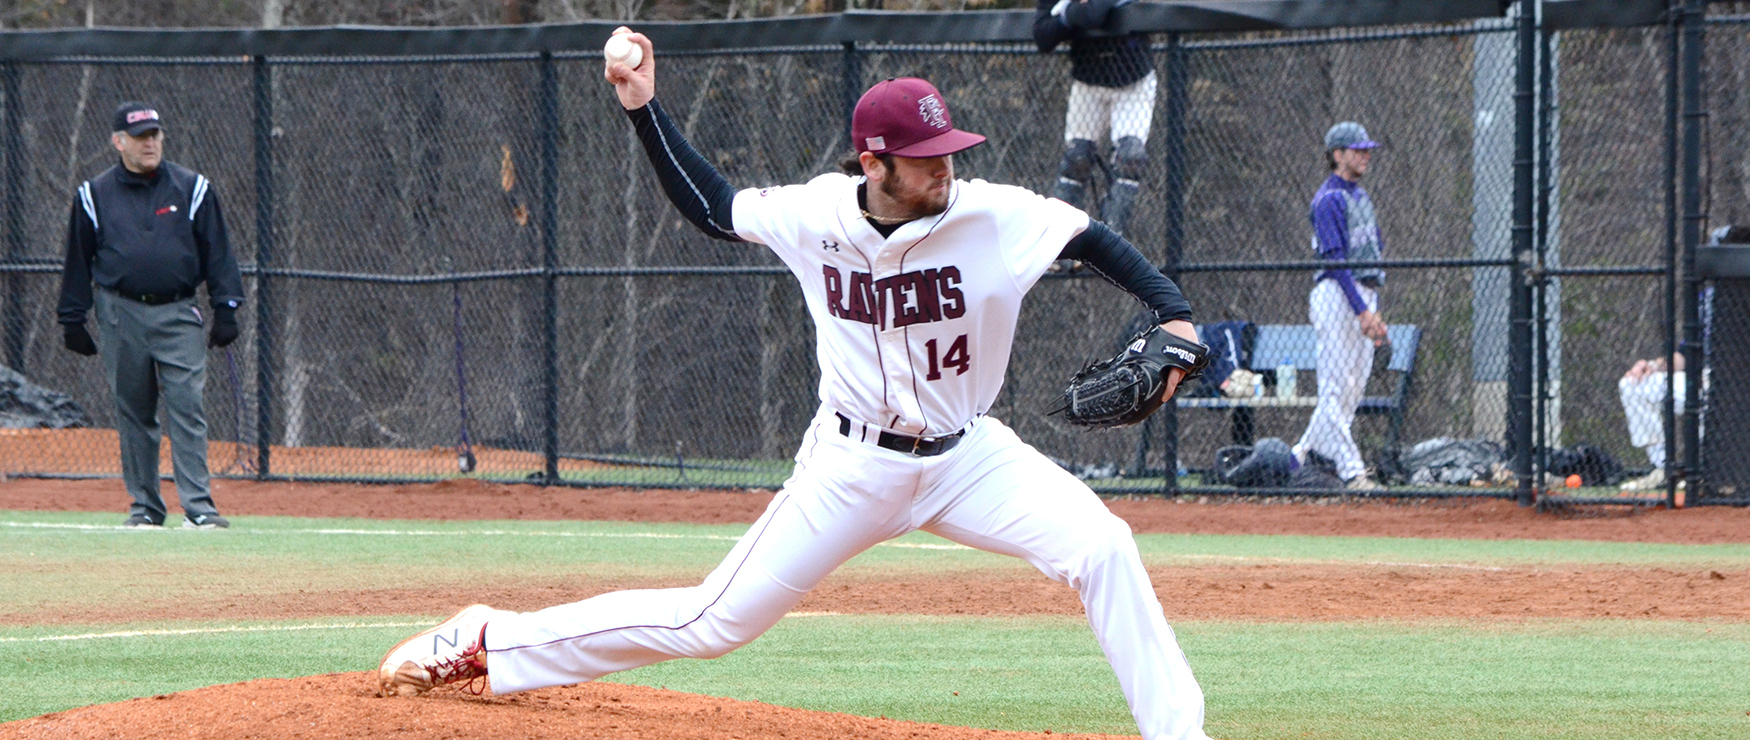 Baseball Capitalizes on Late Miscues to Notch 6-4 Win at Merrimack